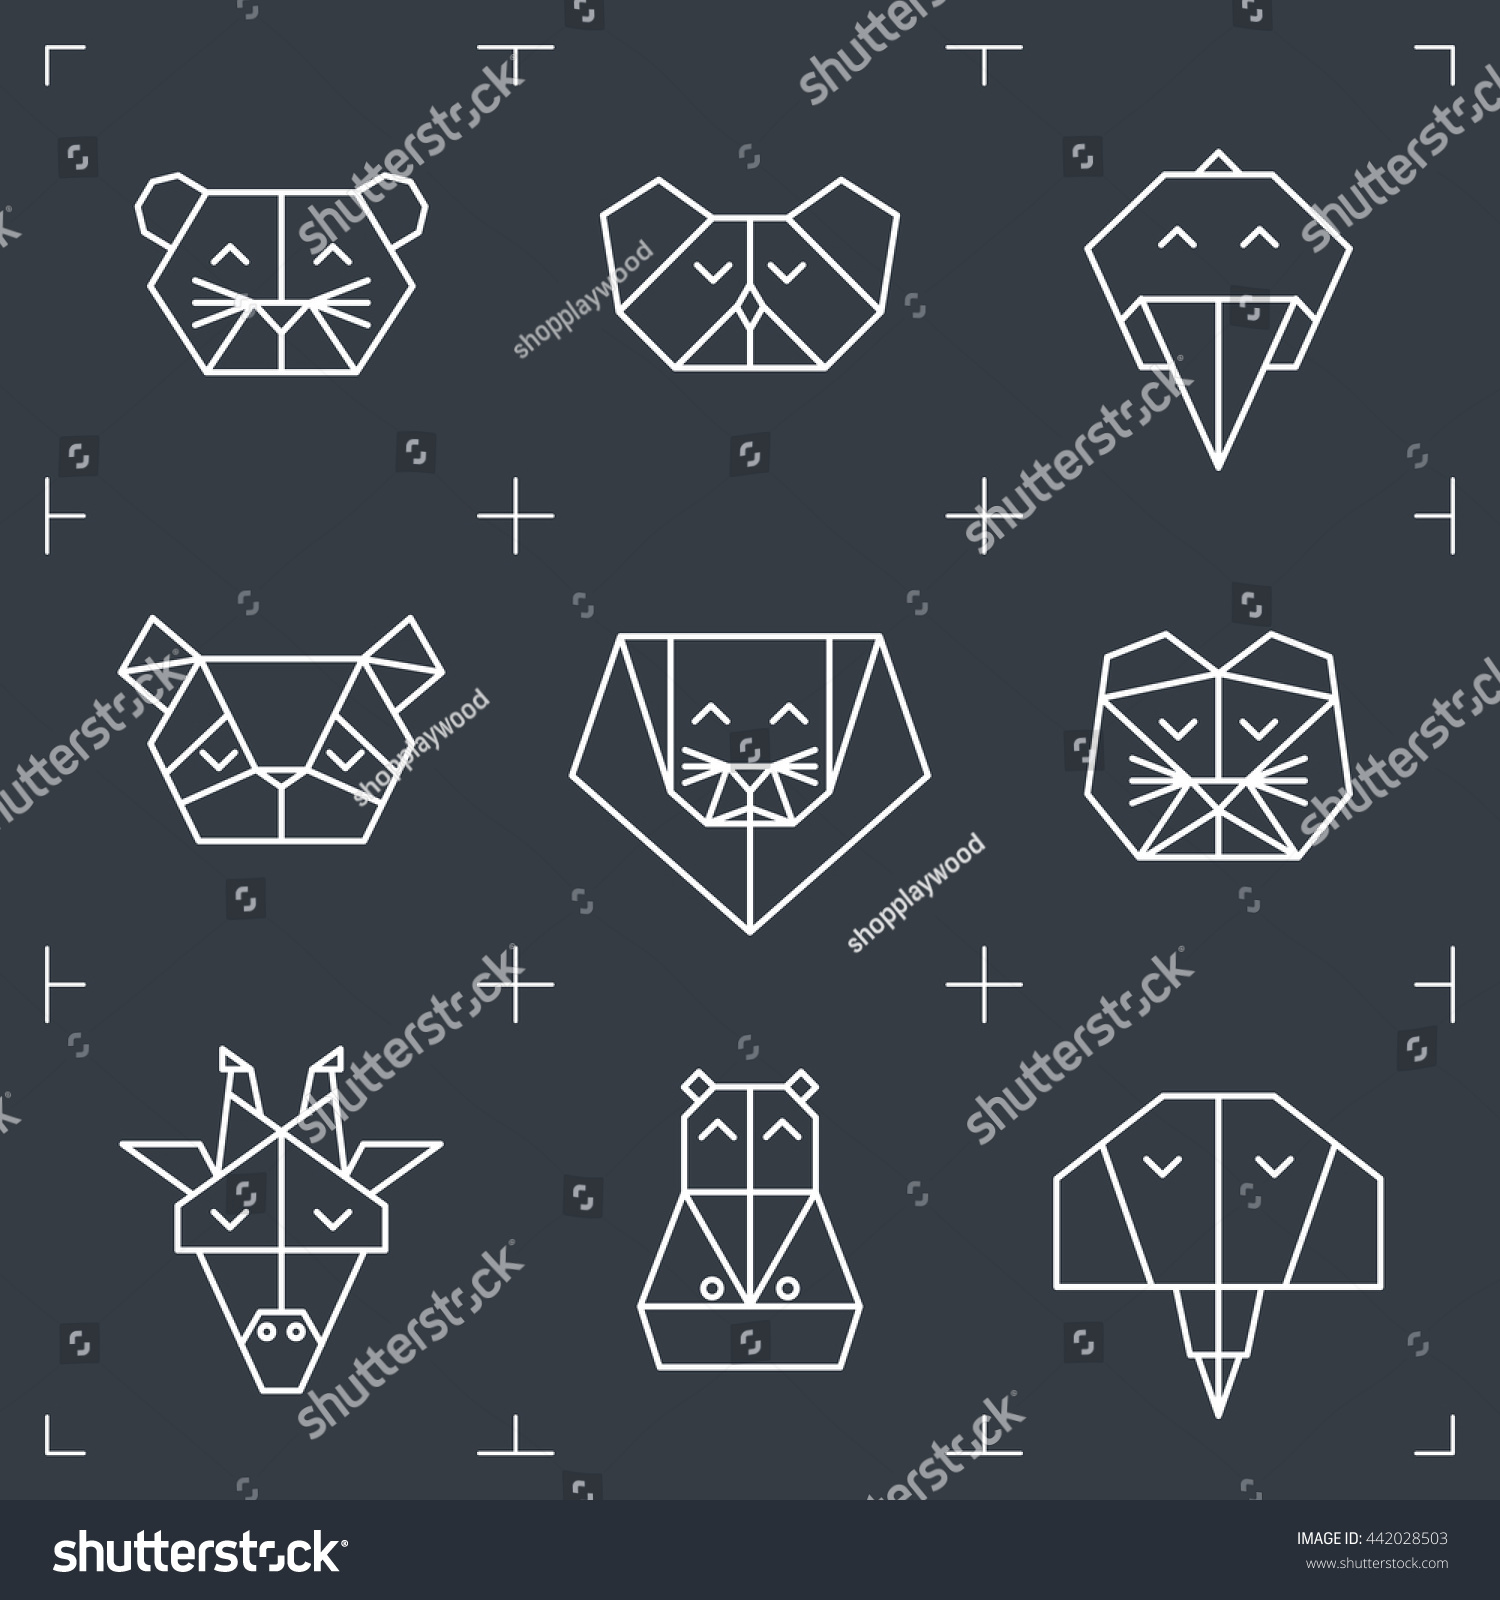 Tiger head triangular icon geometric trendy stock vector image - Front View Animal Heads Animal Triangle Icons Vector Polygonal Animals Geometric Line Design